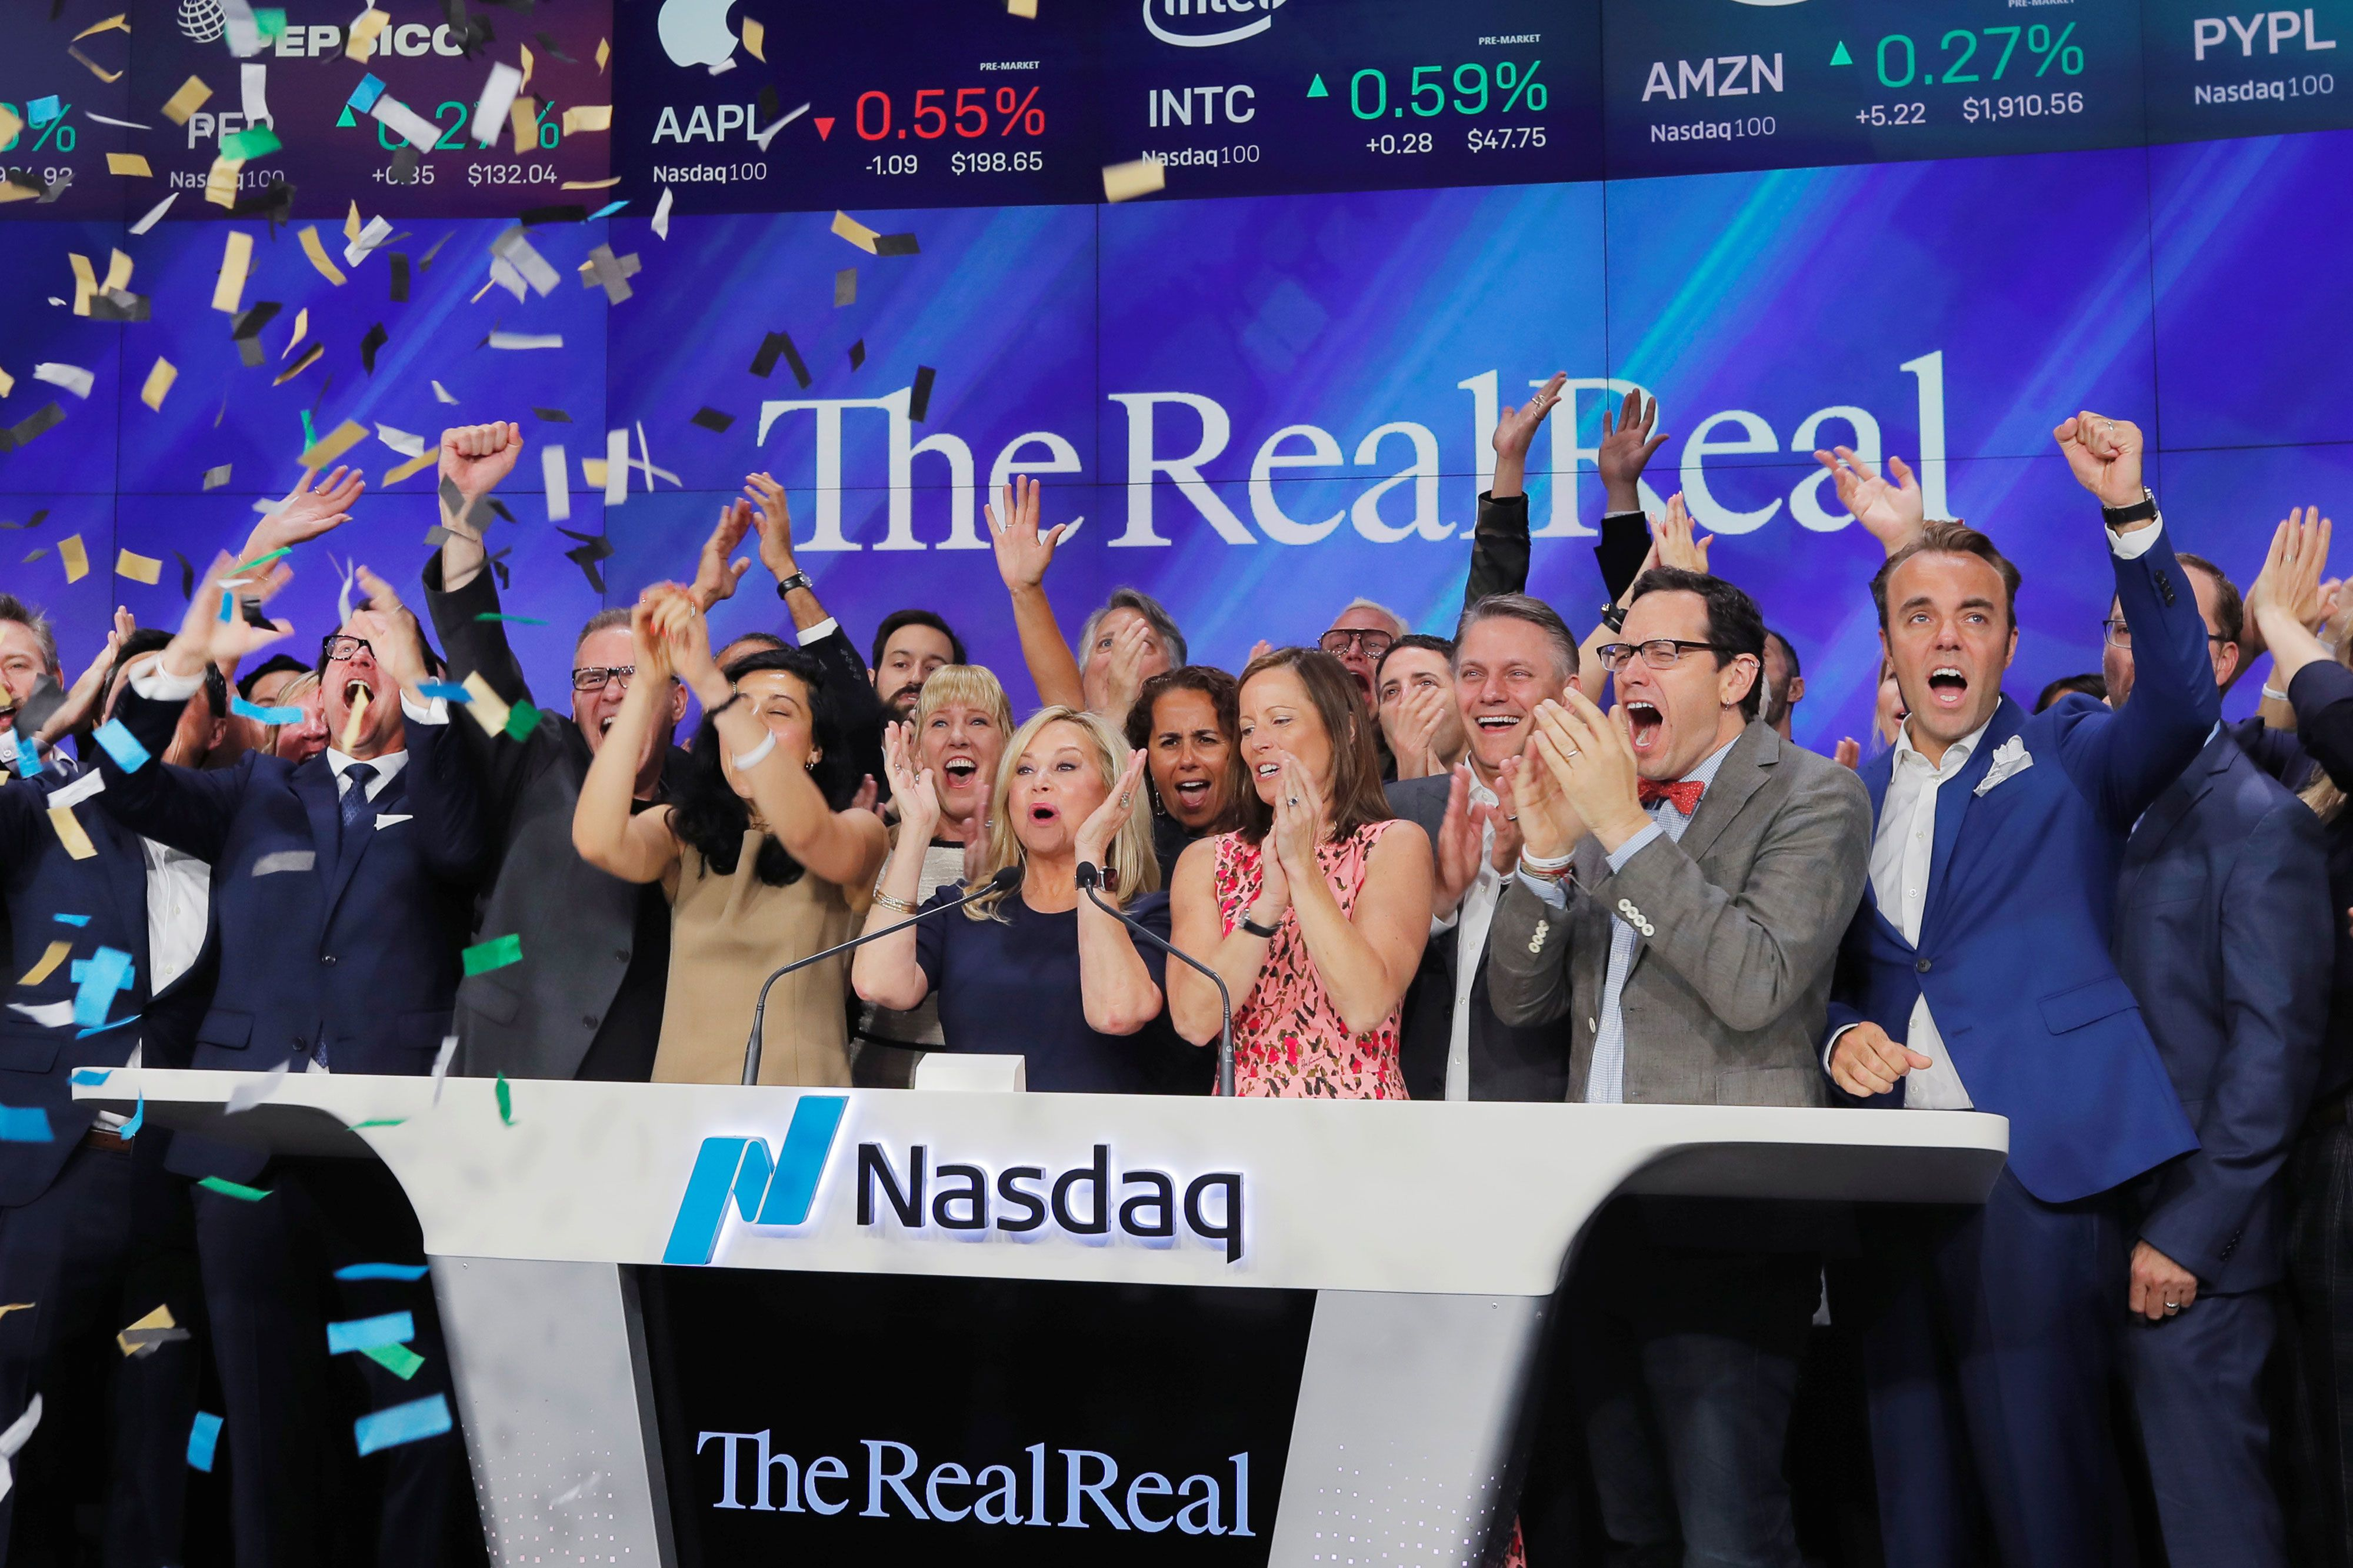 Stocks making the biggest moves after hours: RealReal, Tilray, and Myriad